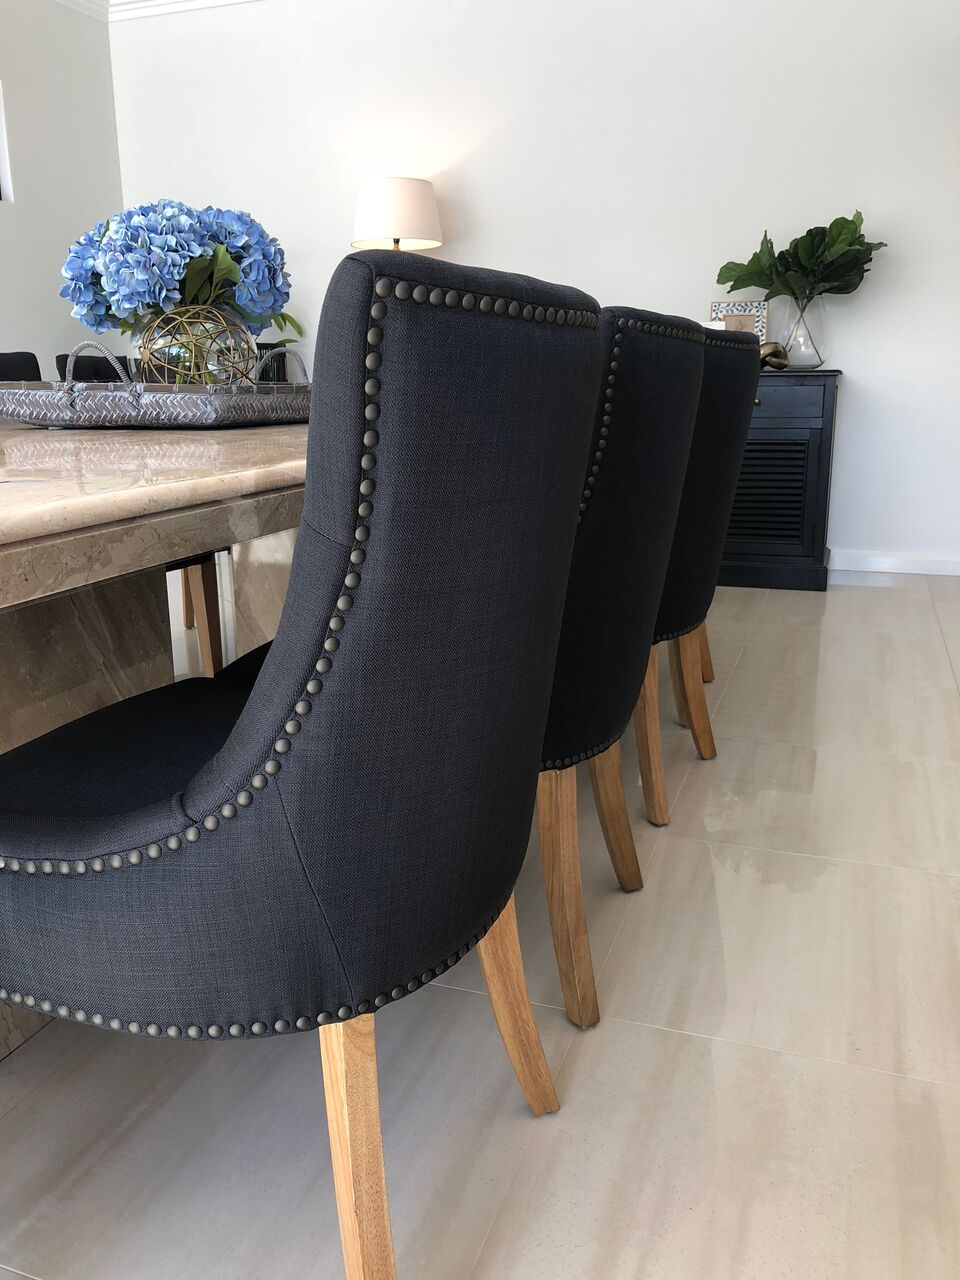 Those who live with allergies know how constant reactions can impact your quality of life… - We're going to explore the experience of my client Amanda* and how one furniture install impacted her whole life.